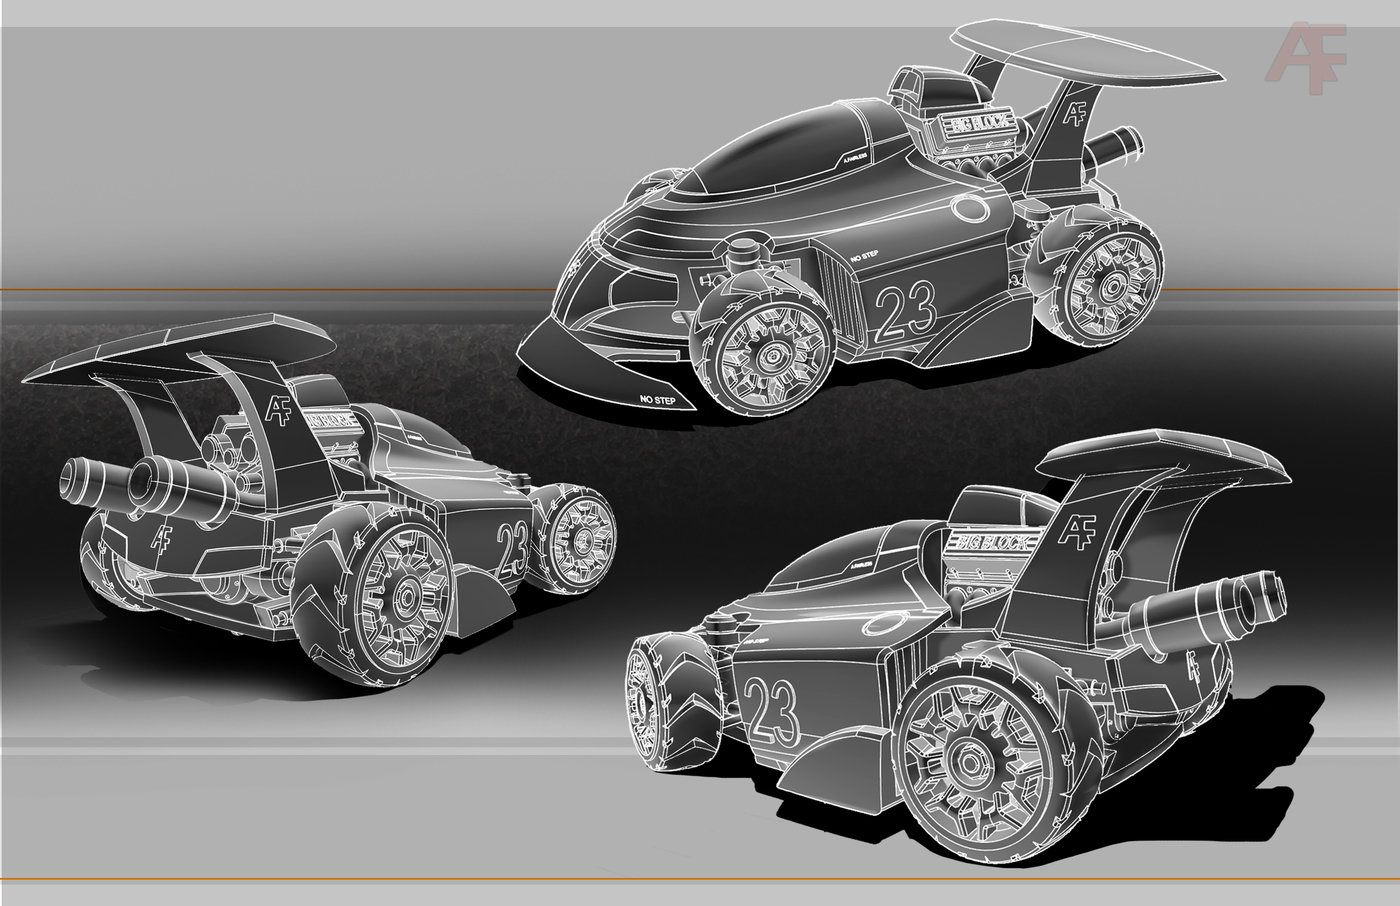 Rhino tutorials for digital tutors by adam fairless at coroflot the purpose of the tutorials in this instance is to teach rhino modeling to produce a printable 3d asset all surfaces are shelled and ready baditri Choice Image